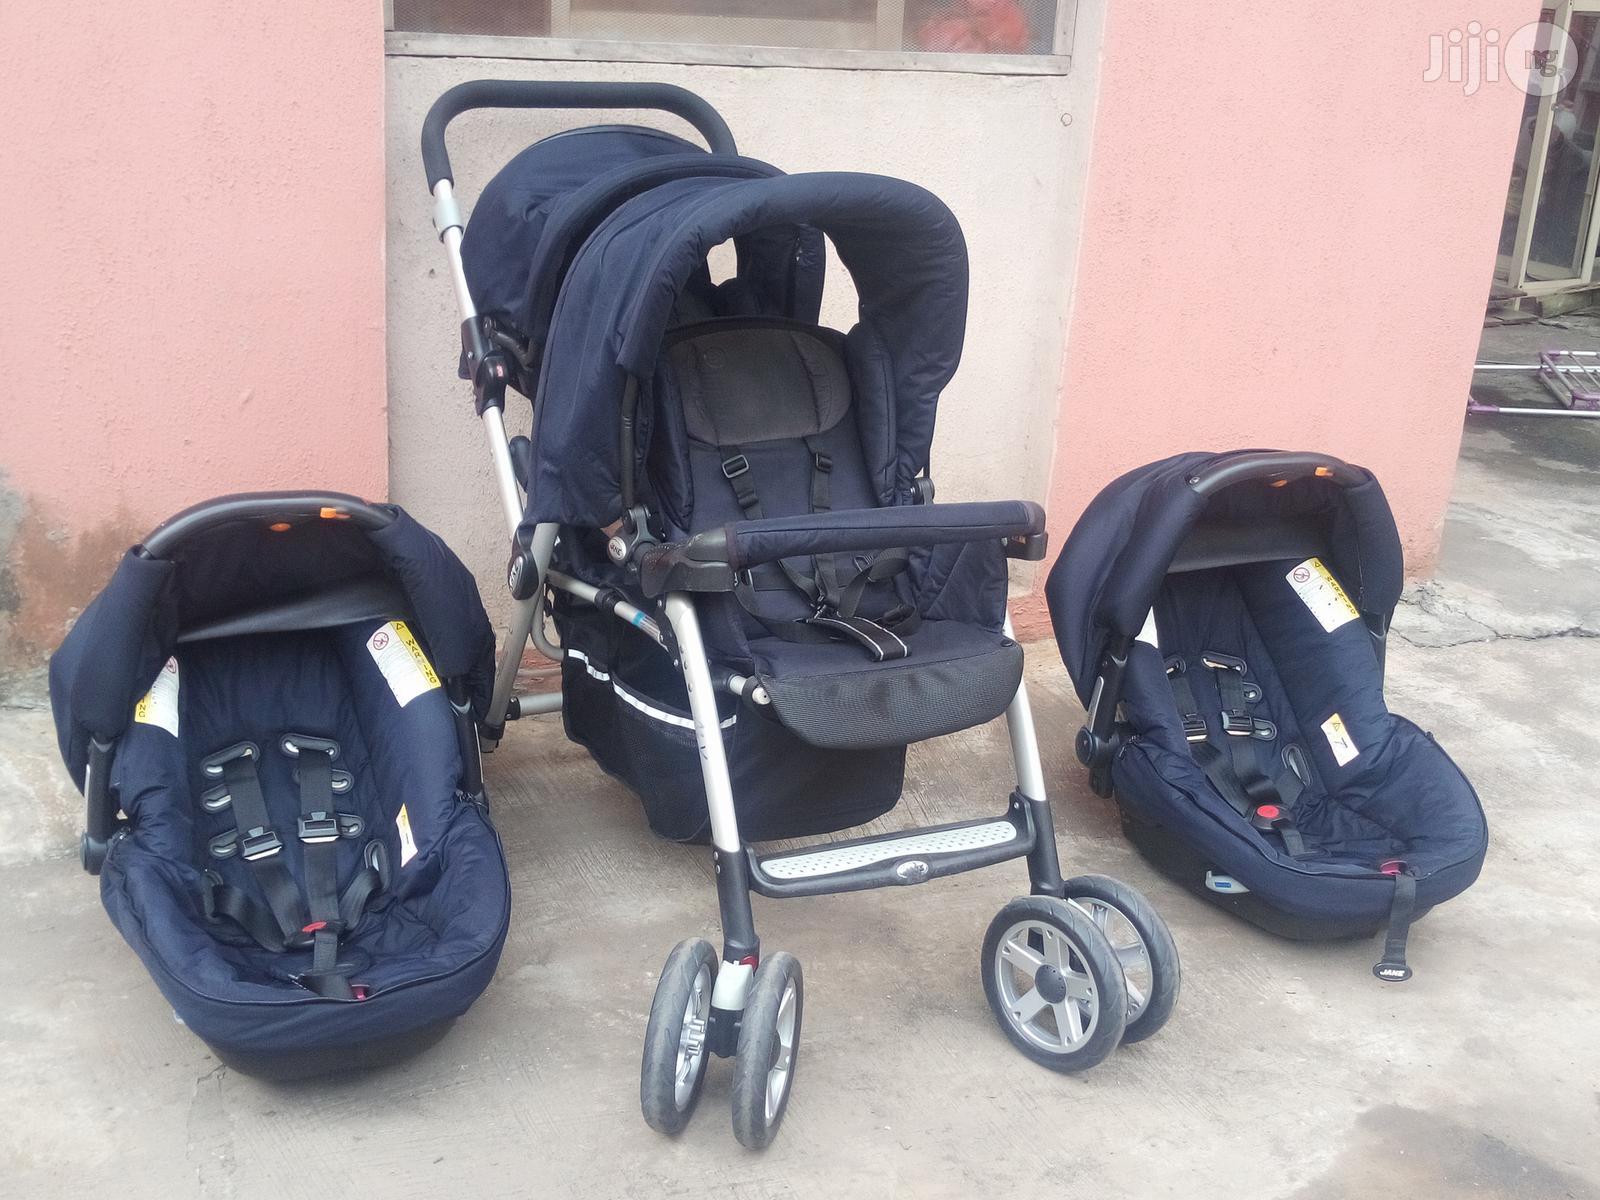 Tokunbo UK Used Jane Twin Stroller With Car Seat From Newborn To Toddler | Prams & Strollers for sale in Lagos Island (Eko), Lagos State, Nigeria